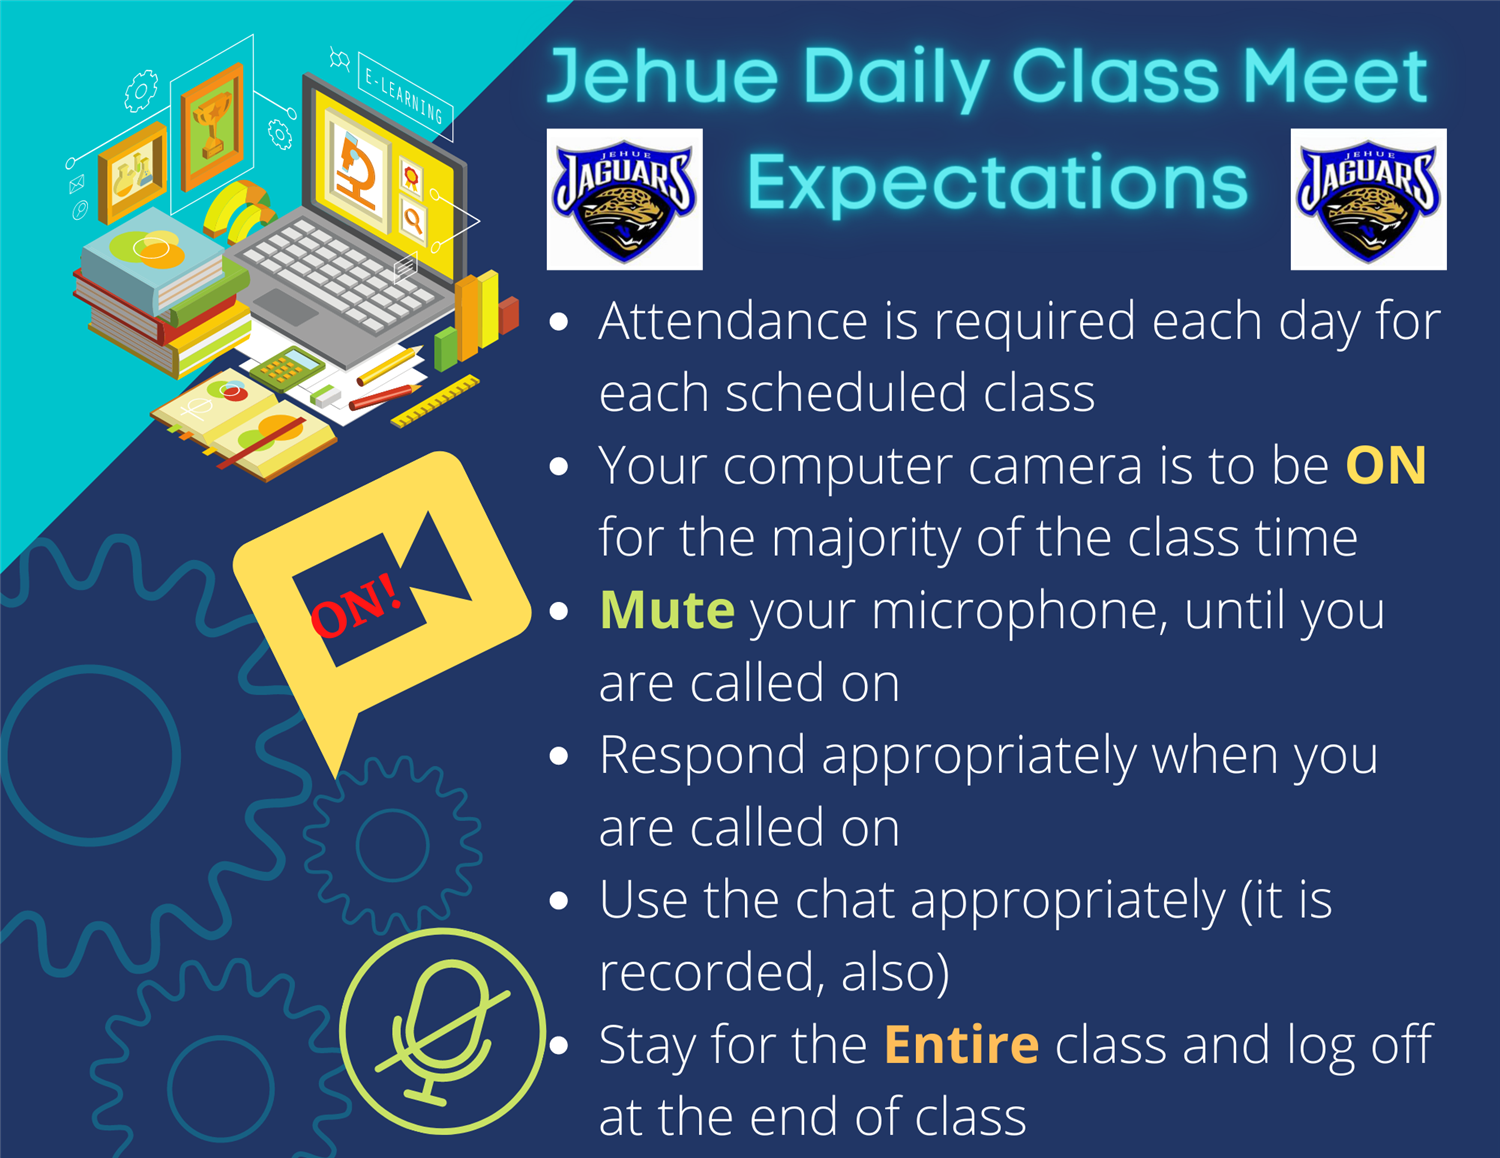 Jehue Daily Class Meet Expectations